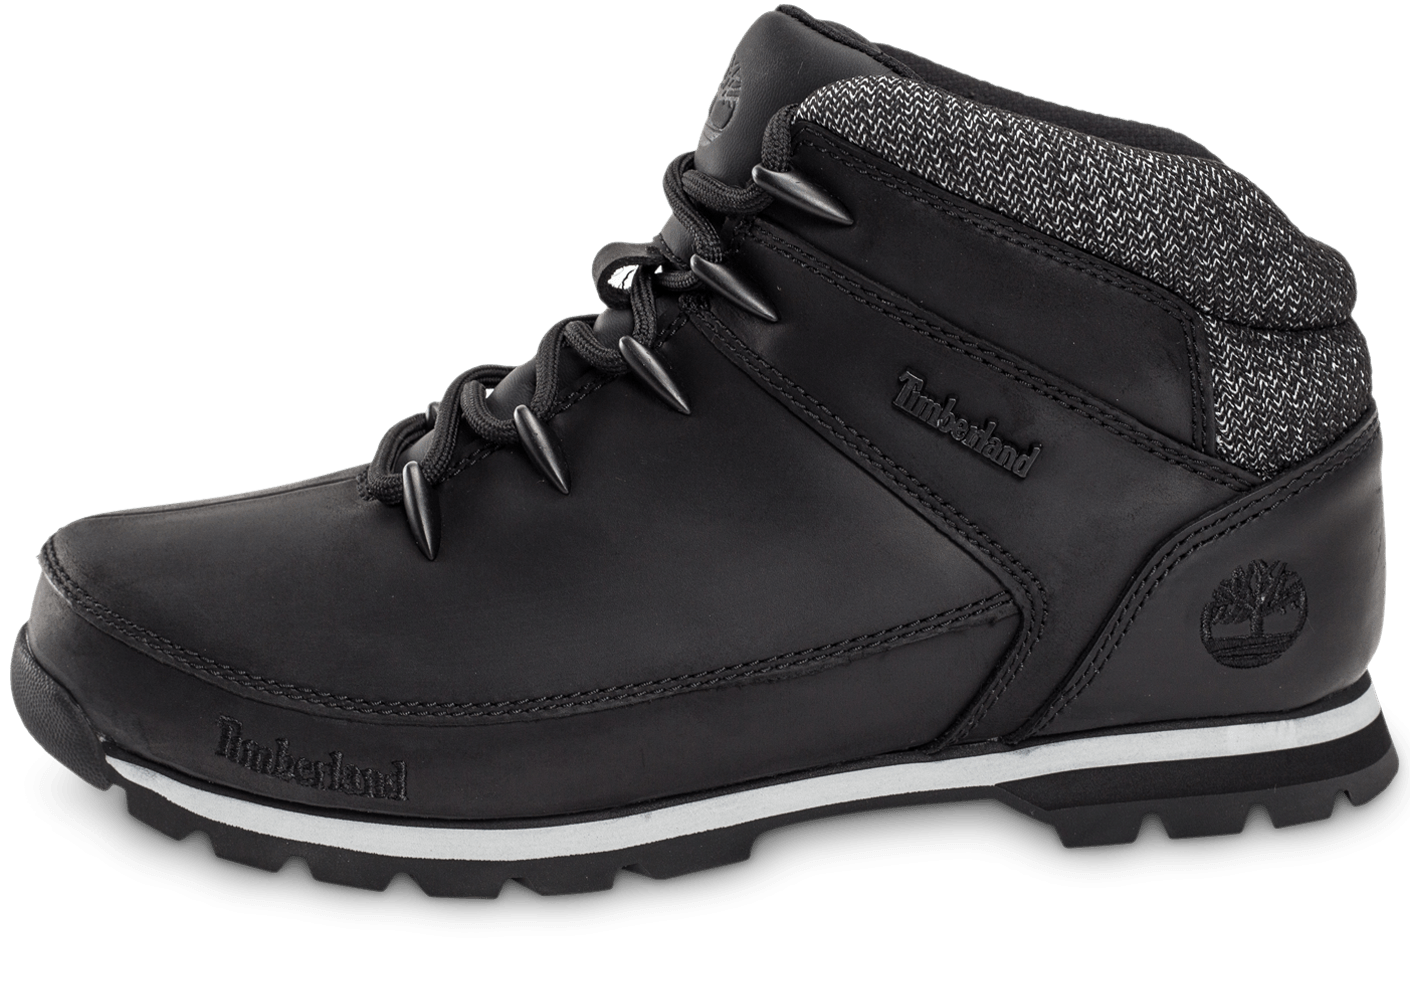 timberland euro sprint hiker noire chaussures homme chausport. Black Bedroom Furniture Sets. Home Design Ideas